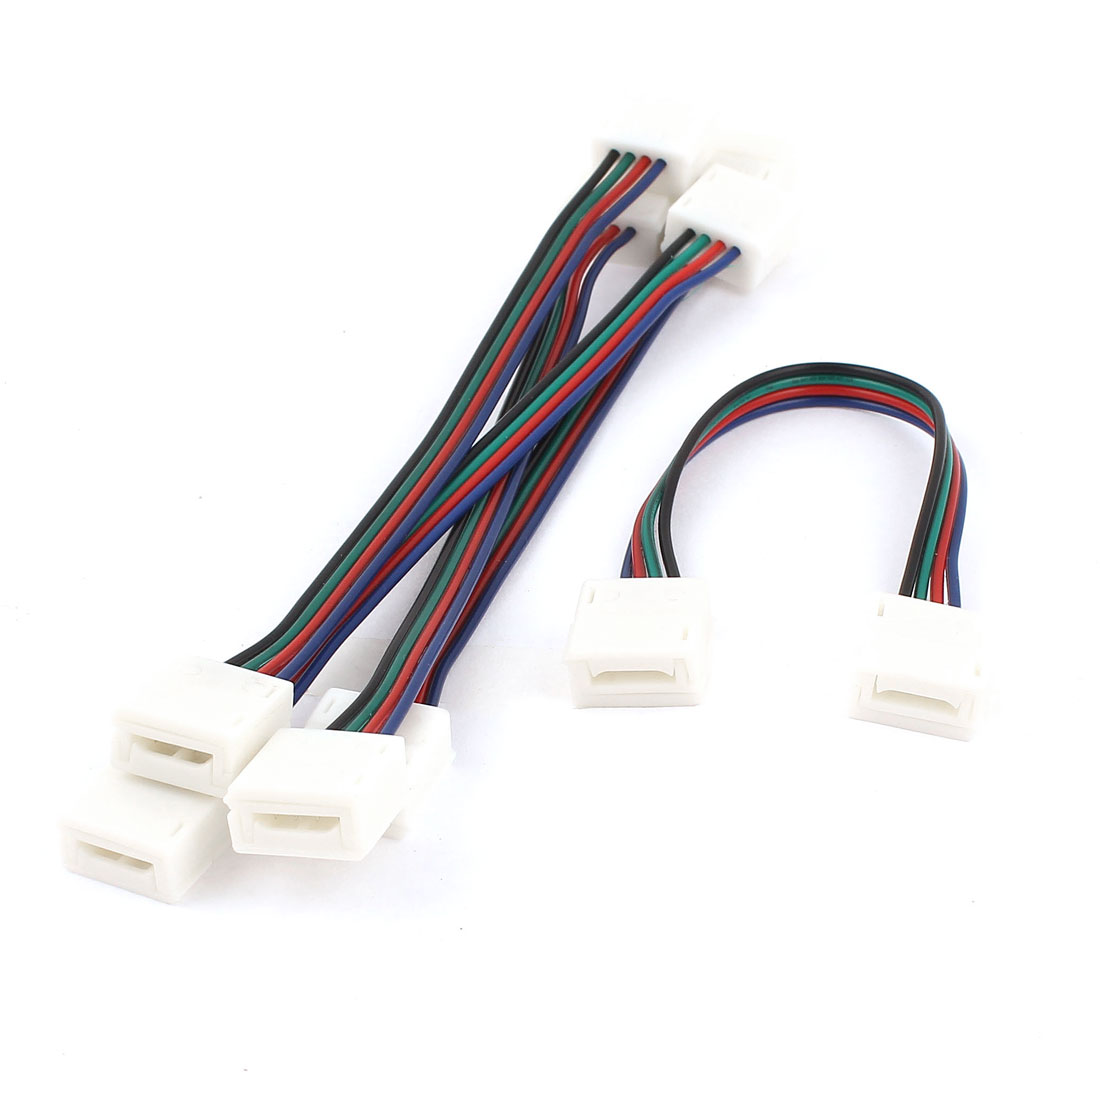 5pcs 15cm Long Double Terminal 4pin Adapter Wire Connector for Light Strip